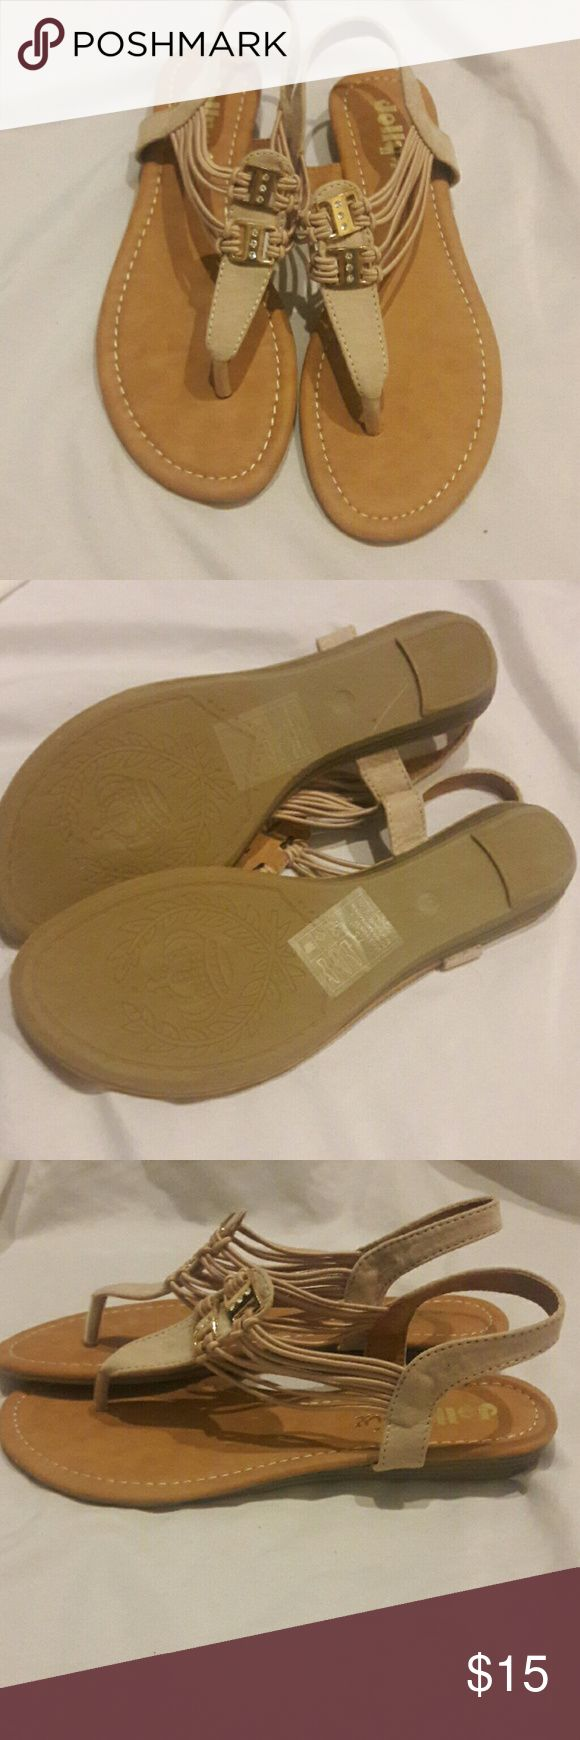 Women's sandals that hide bunions - Women S Sandals Wear With Dresses To Jeans